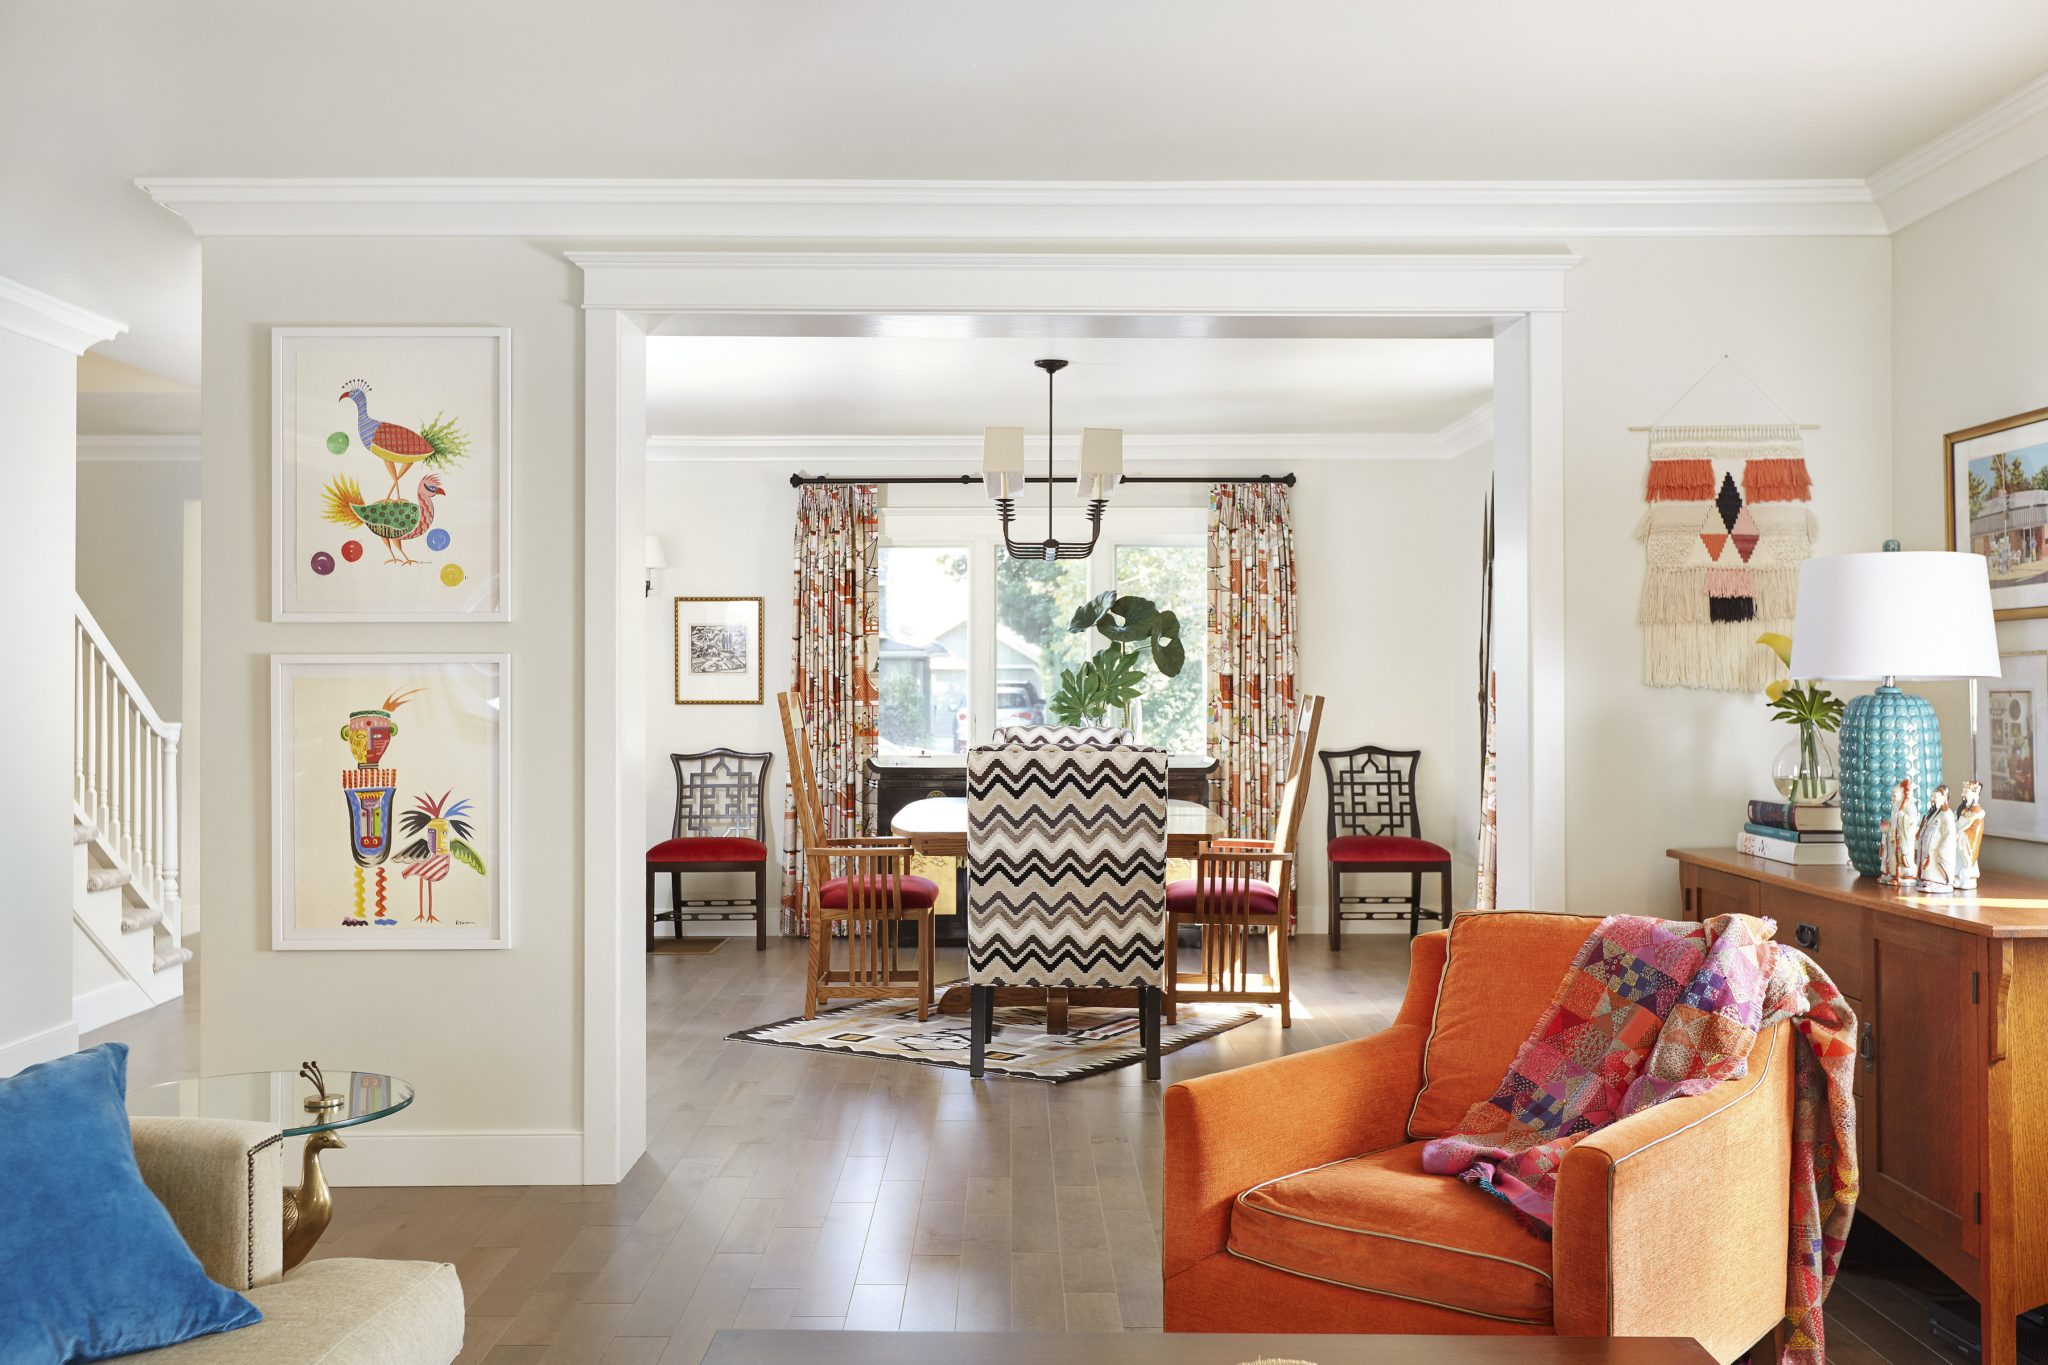 Light andbright open floor plan in an updated craftsman home with pops of color. By PepperJack Interiors